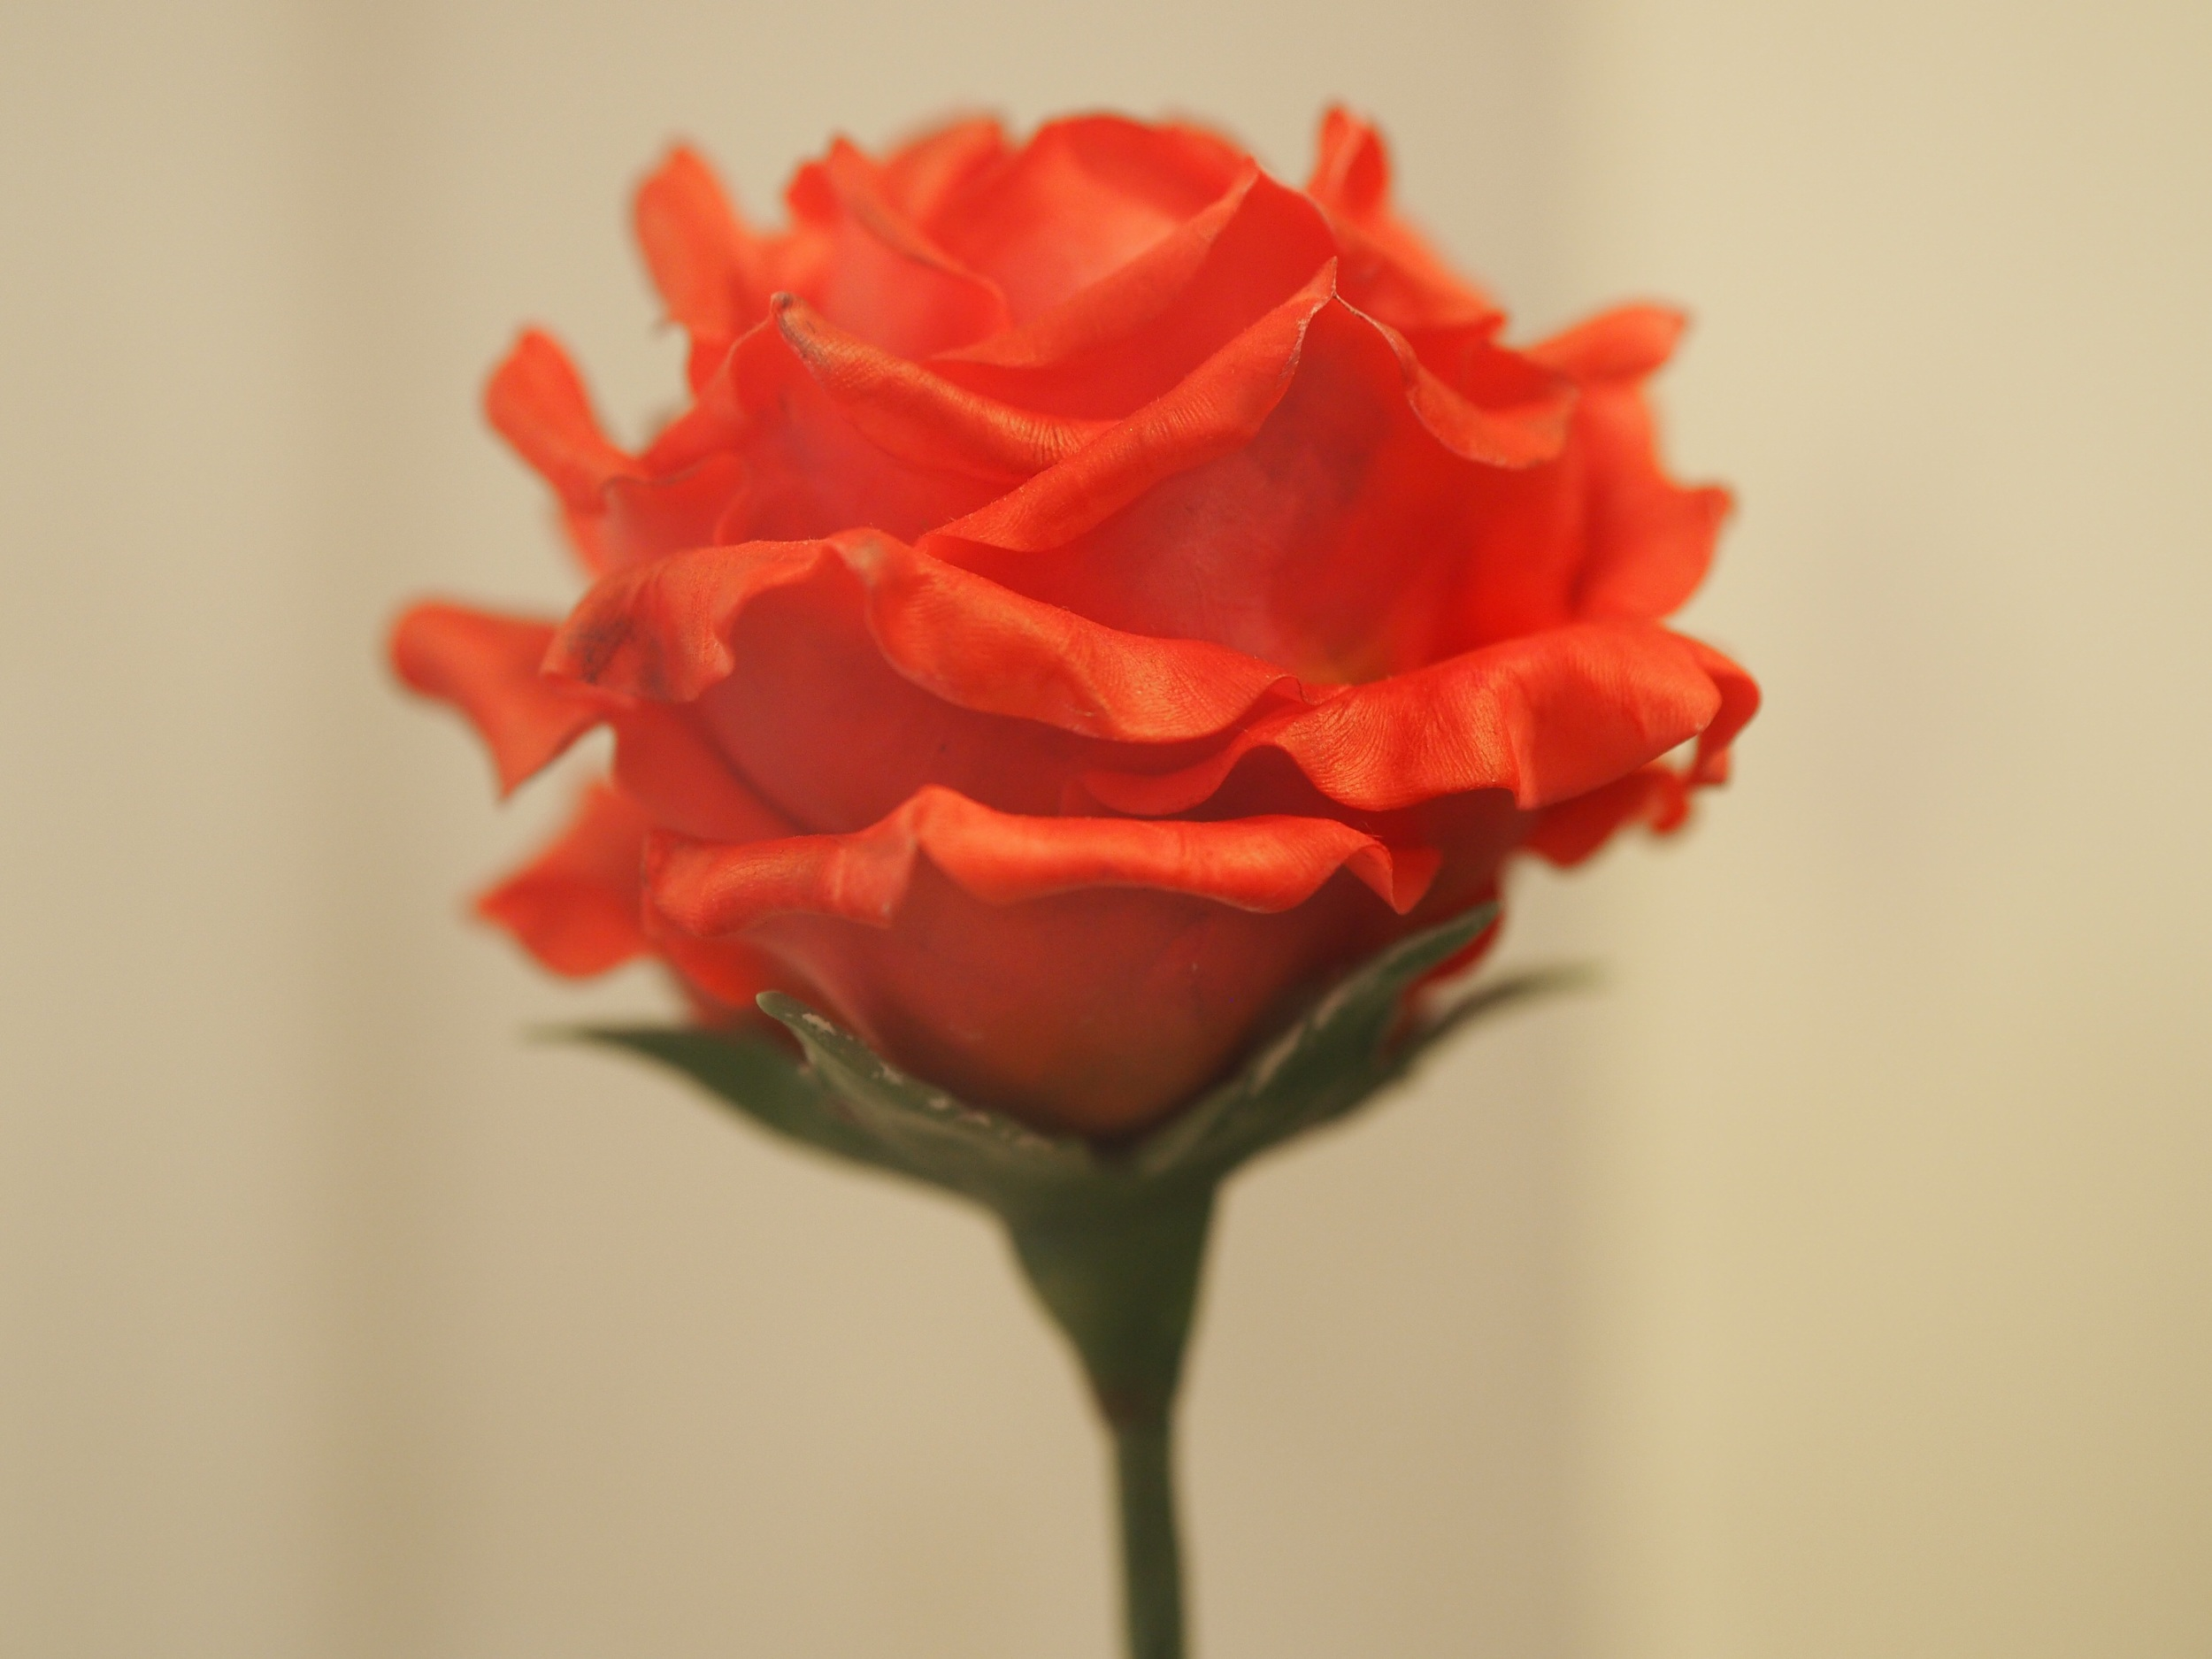 The Rose which seamed to symbolise his love for France